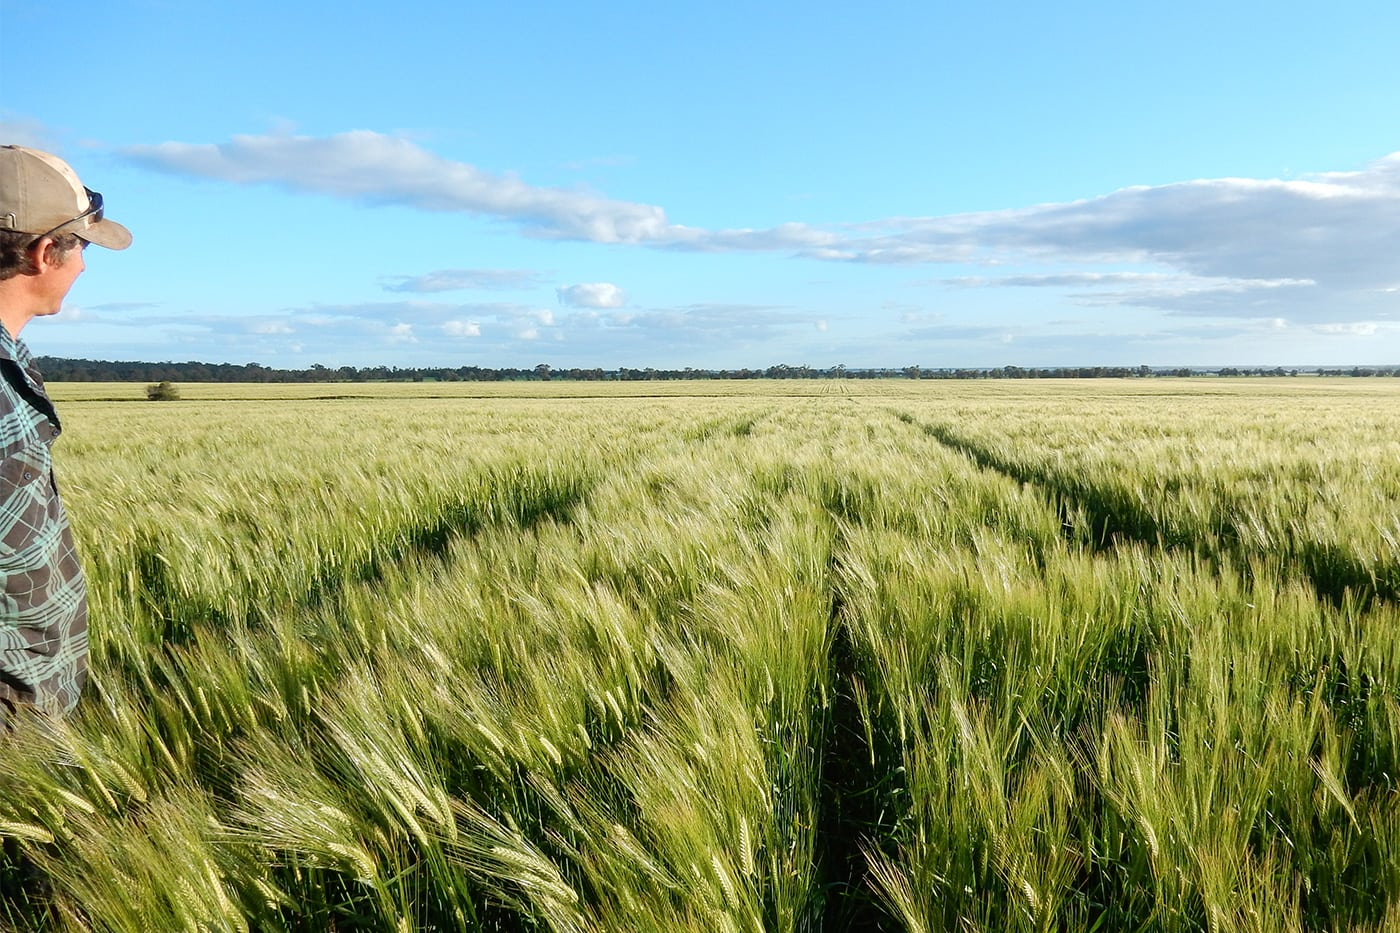 riverina wheat field farm